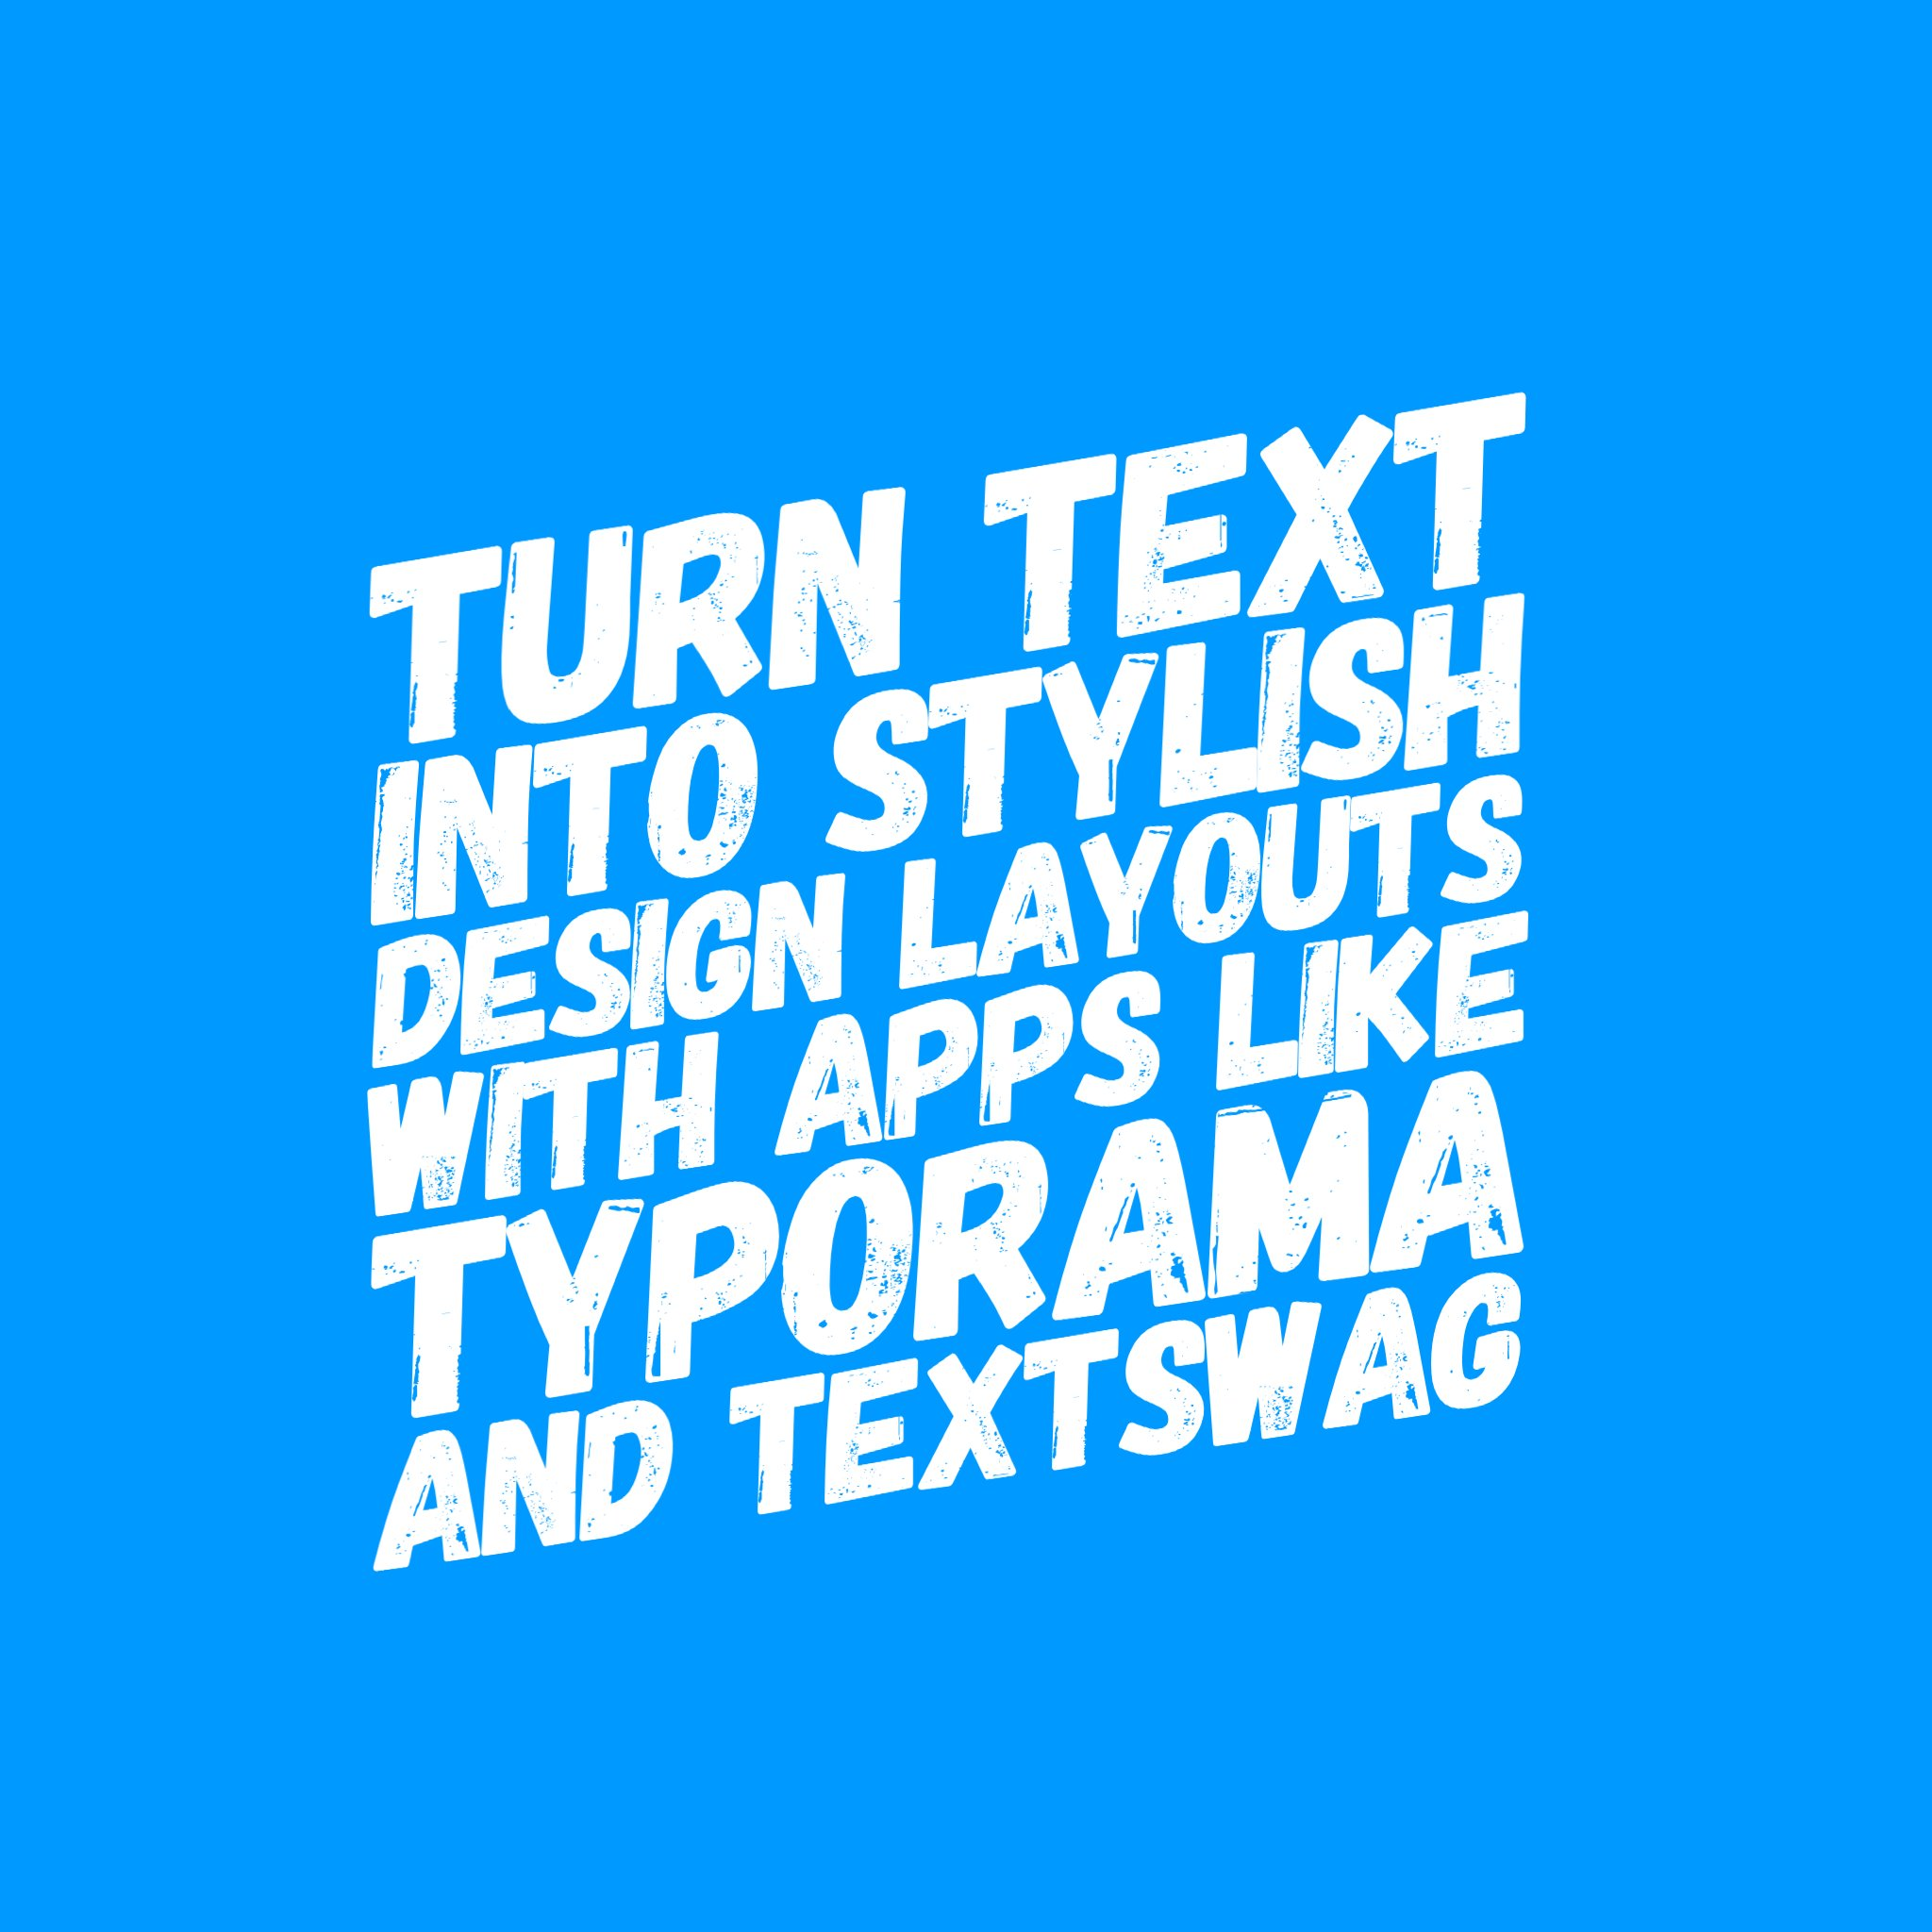 Tip Tuesday! Instantly turn text into stylish design layouts with apps like Typorama (iOS) and TextSwag (Android). Both are free. https://t.co/kDliW2EAqe